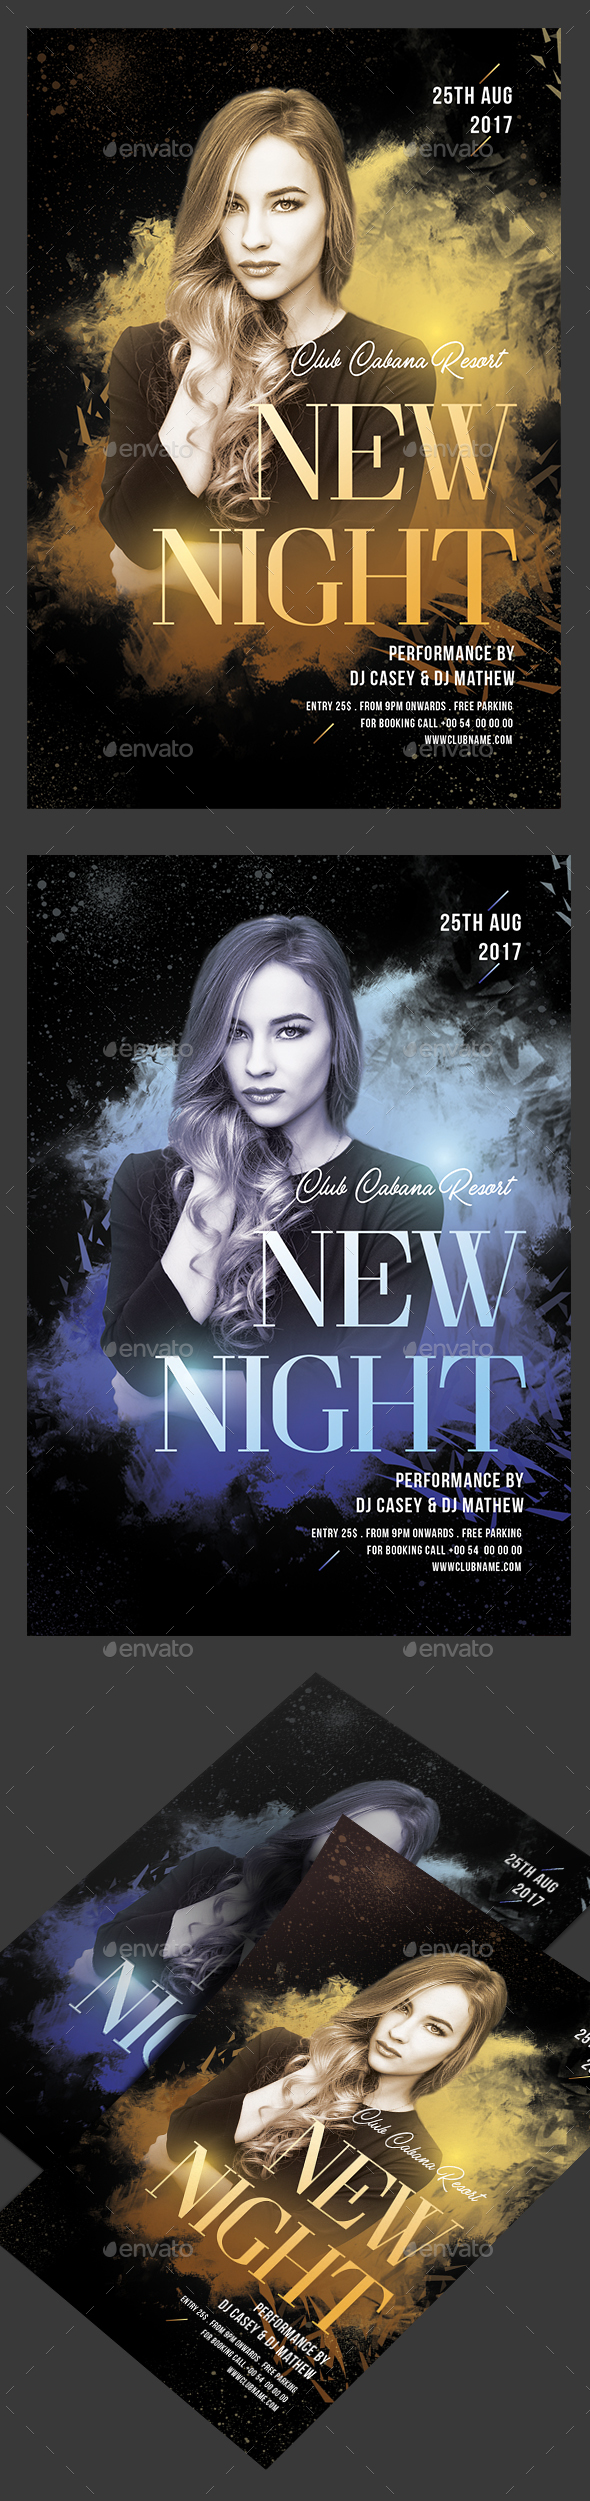 New Night Party Flyer - Clubs & Parties Events